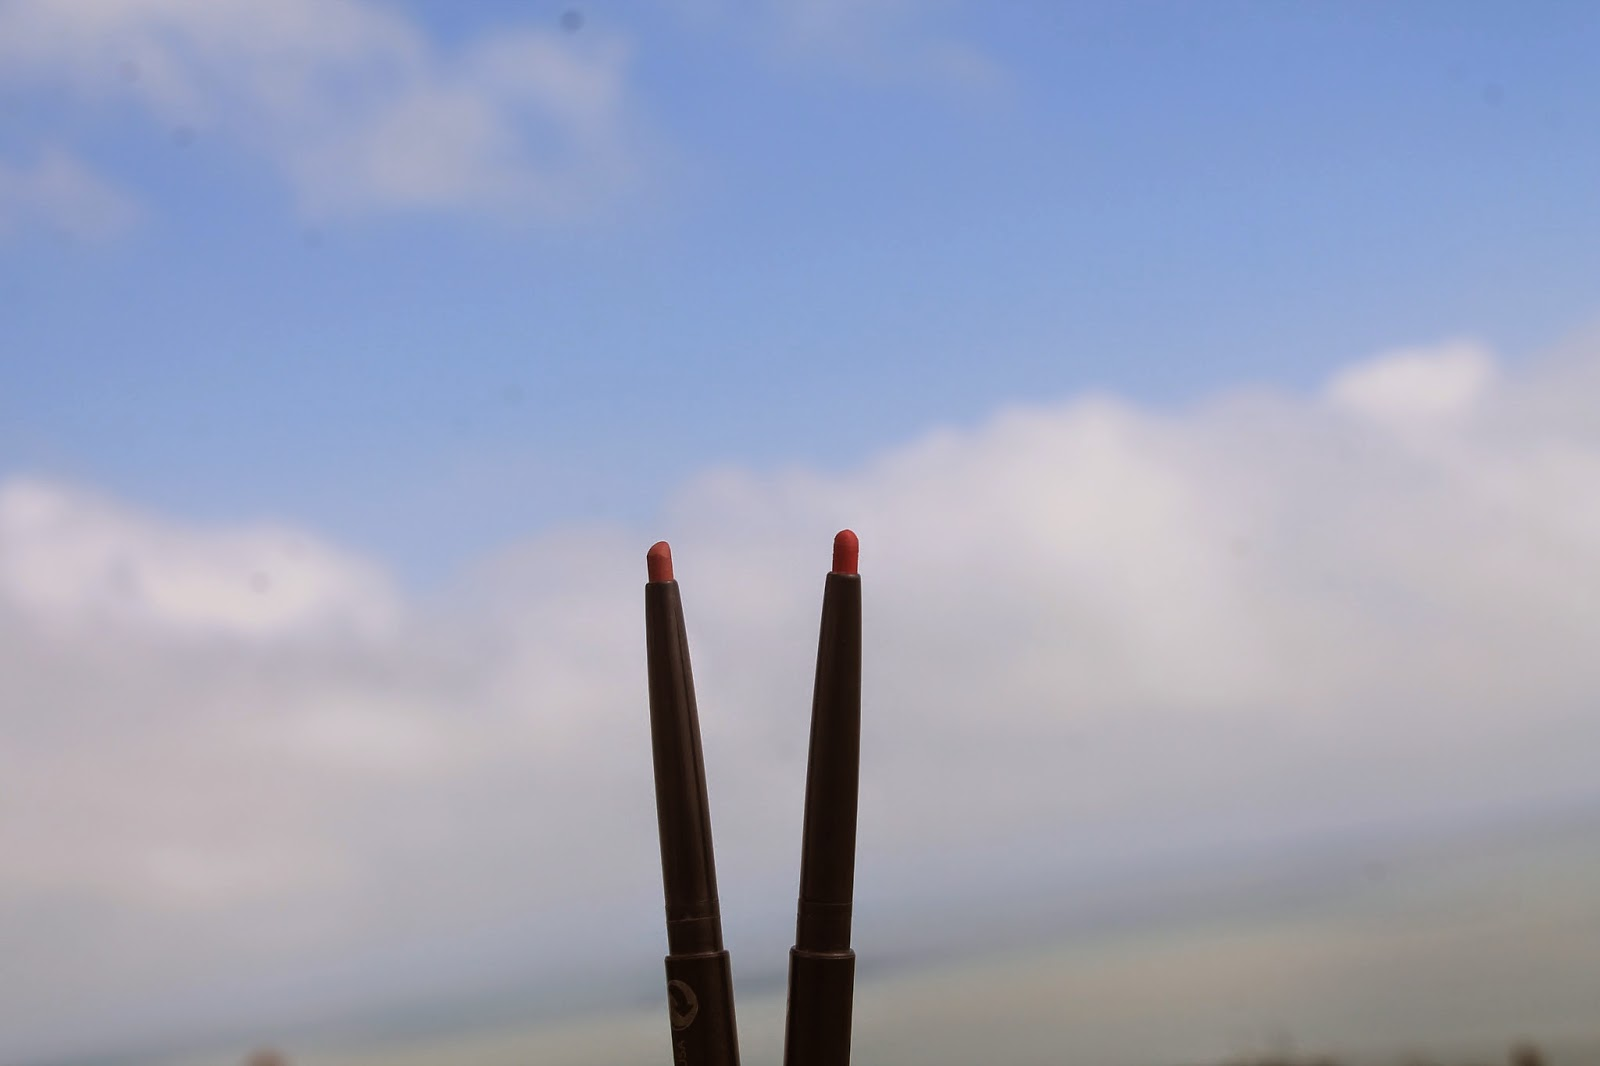 Boots No7 Lip Liners in Fire & Blush - Aspiring Londoner